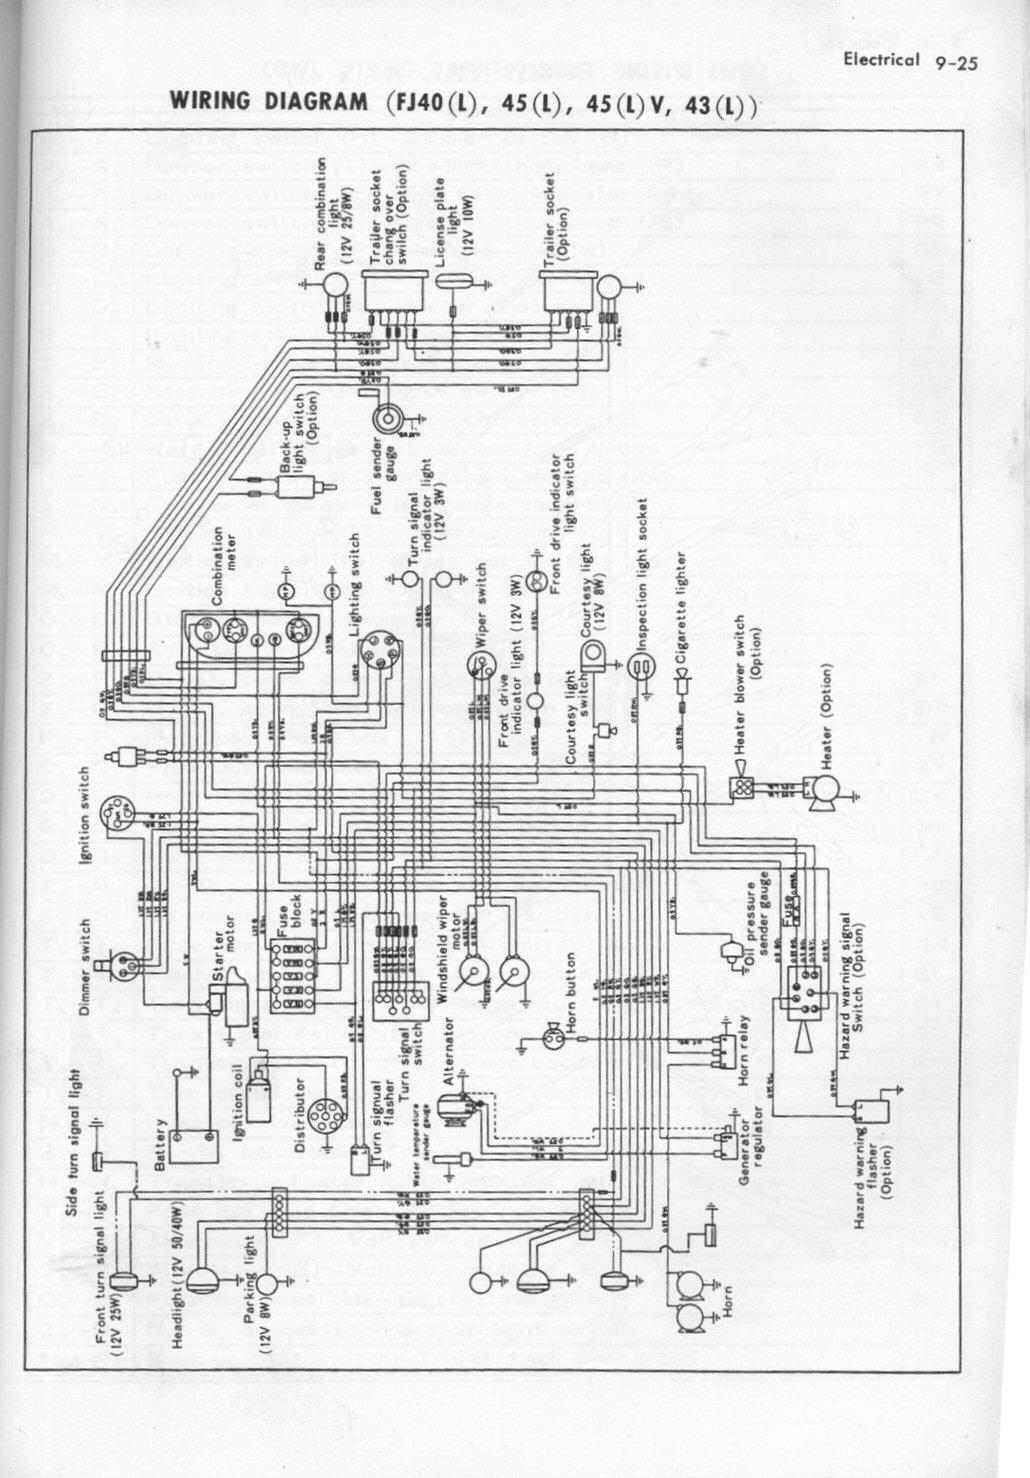 Fj40 Wiring Diagrams Land Cruiser Tech From Ih8mud Com PT Cruiser Wiring-Diagram 2004 PT Cruiser Fuse Box Diagram On Toyota Land Cruiser Turn Signal Wiring Diagram #39